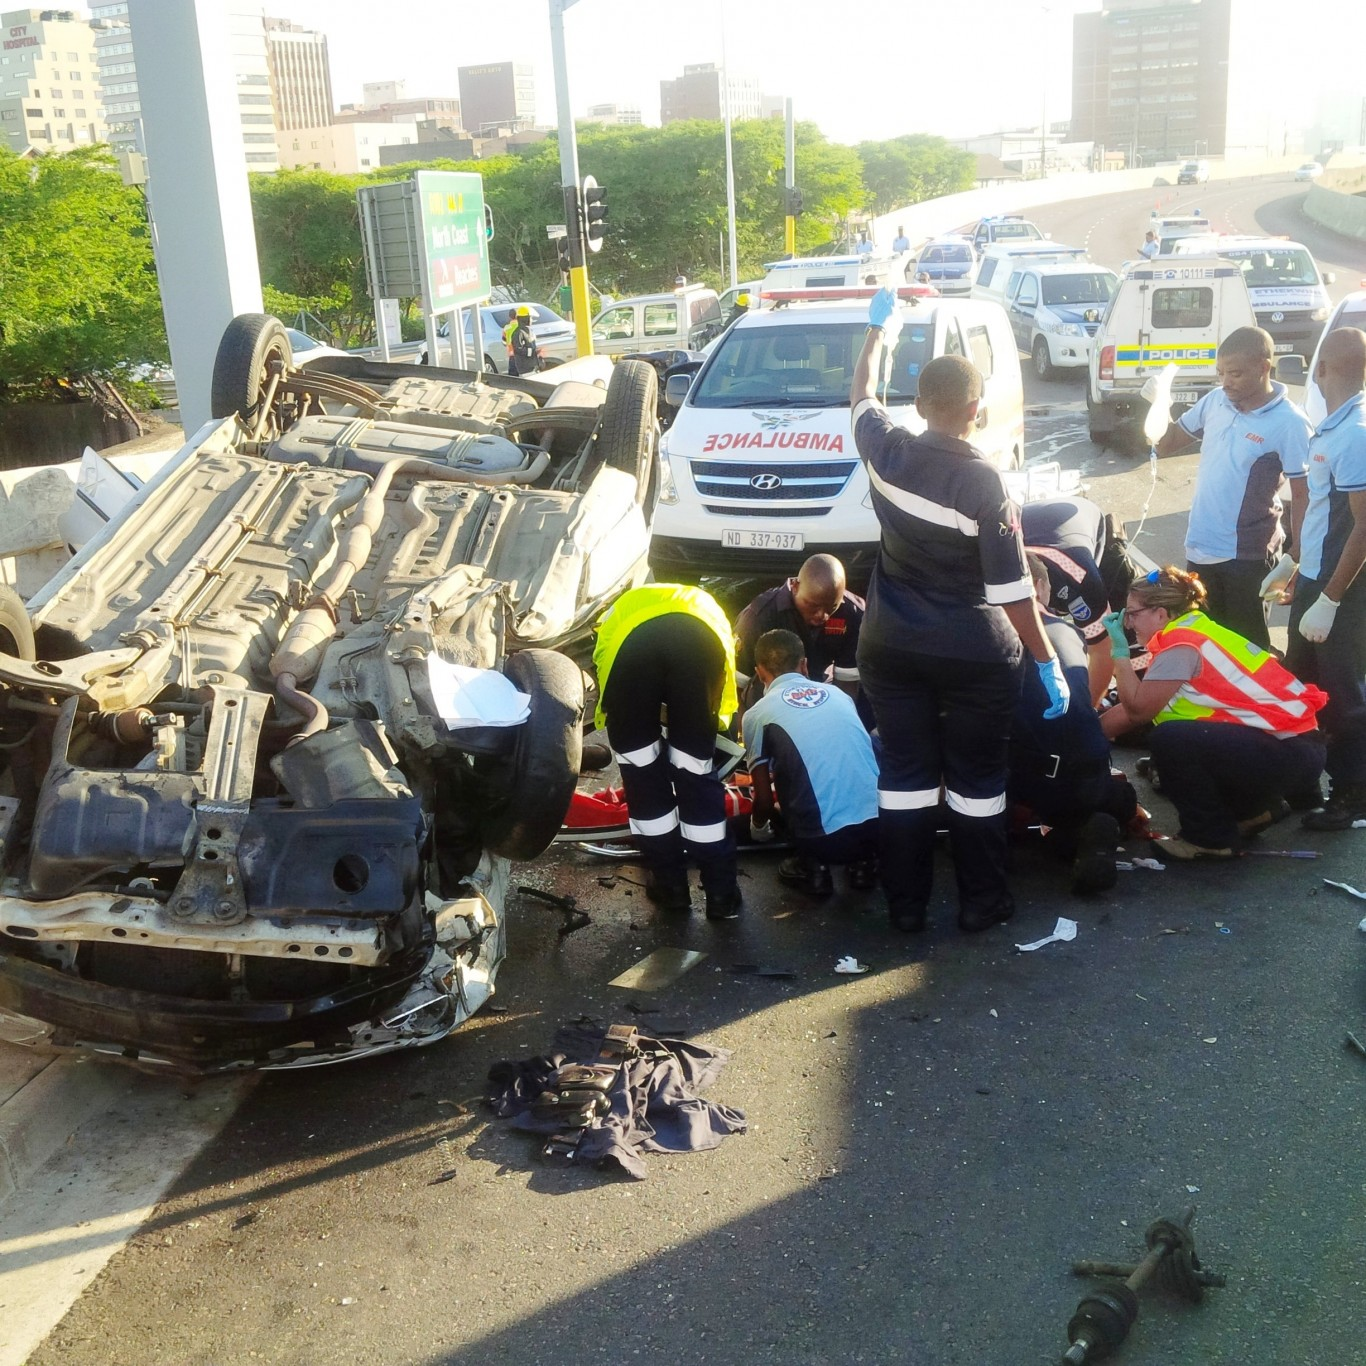 Early morning collision leaves 5 injured, 1 critical